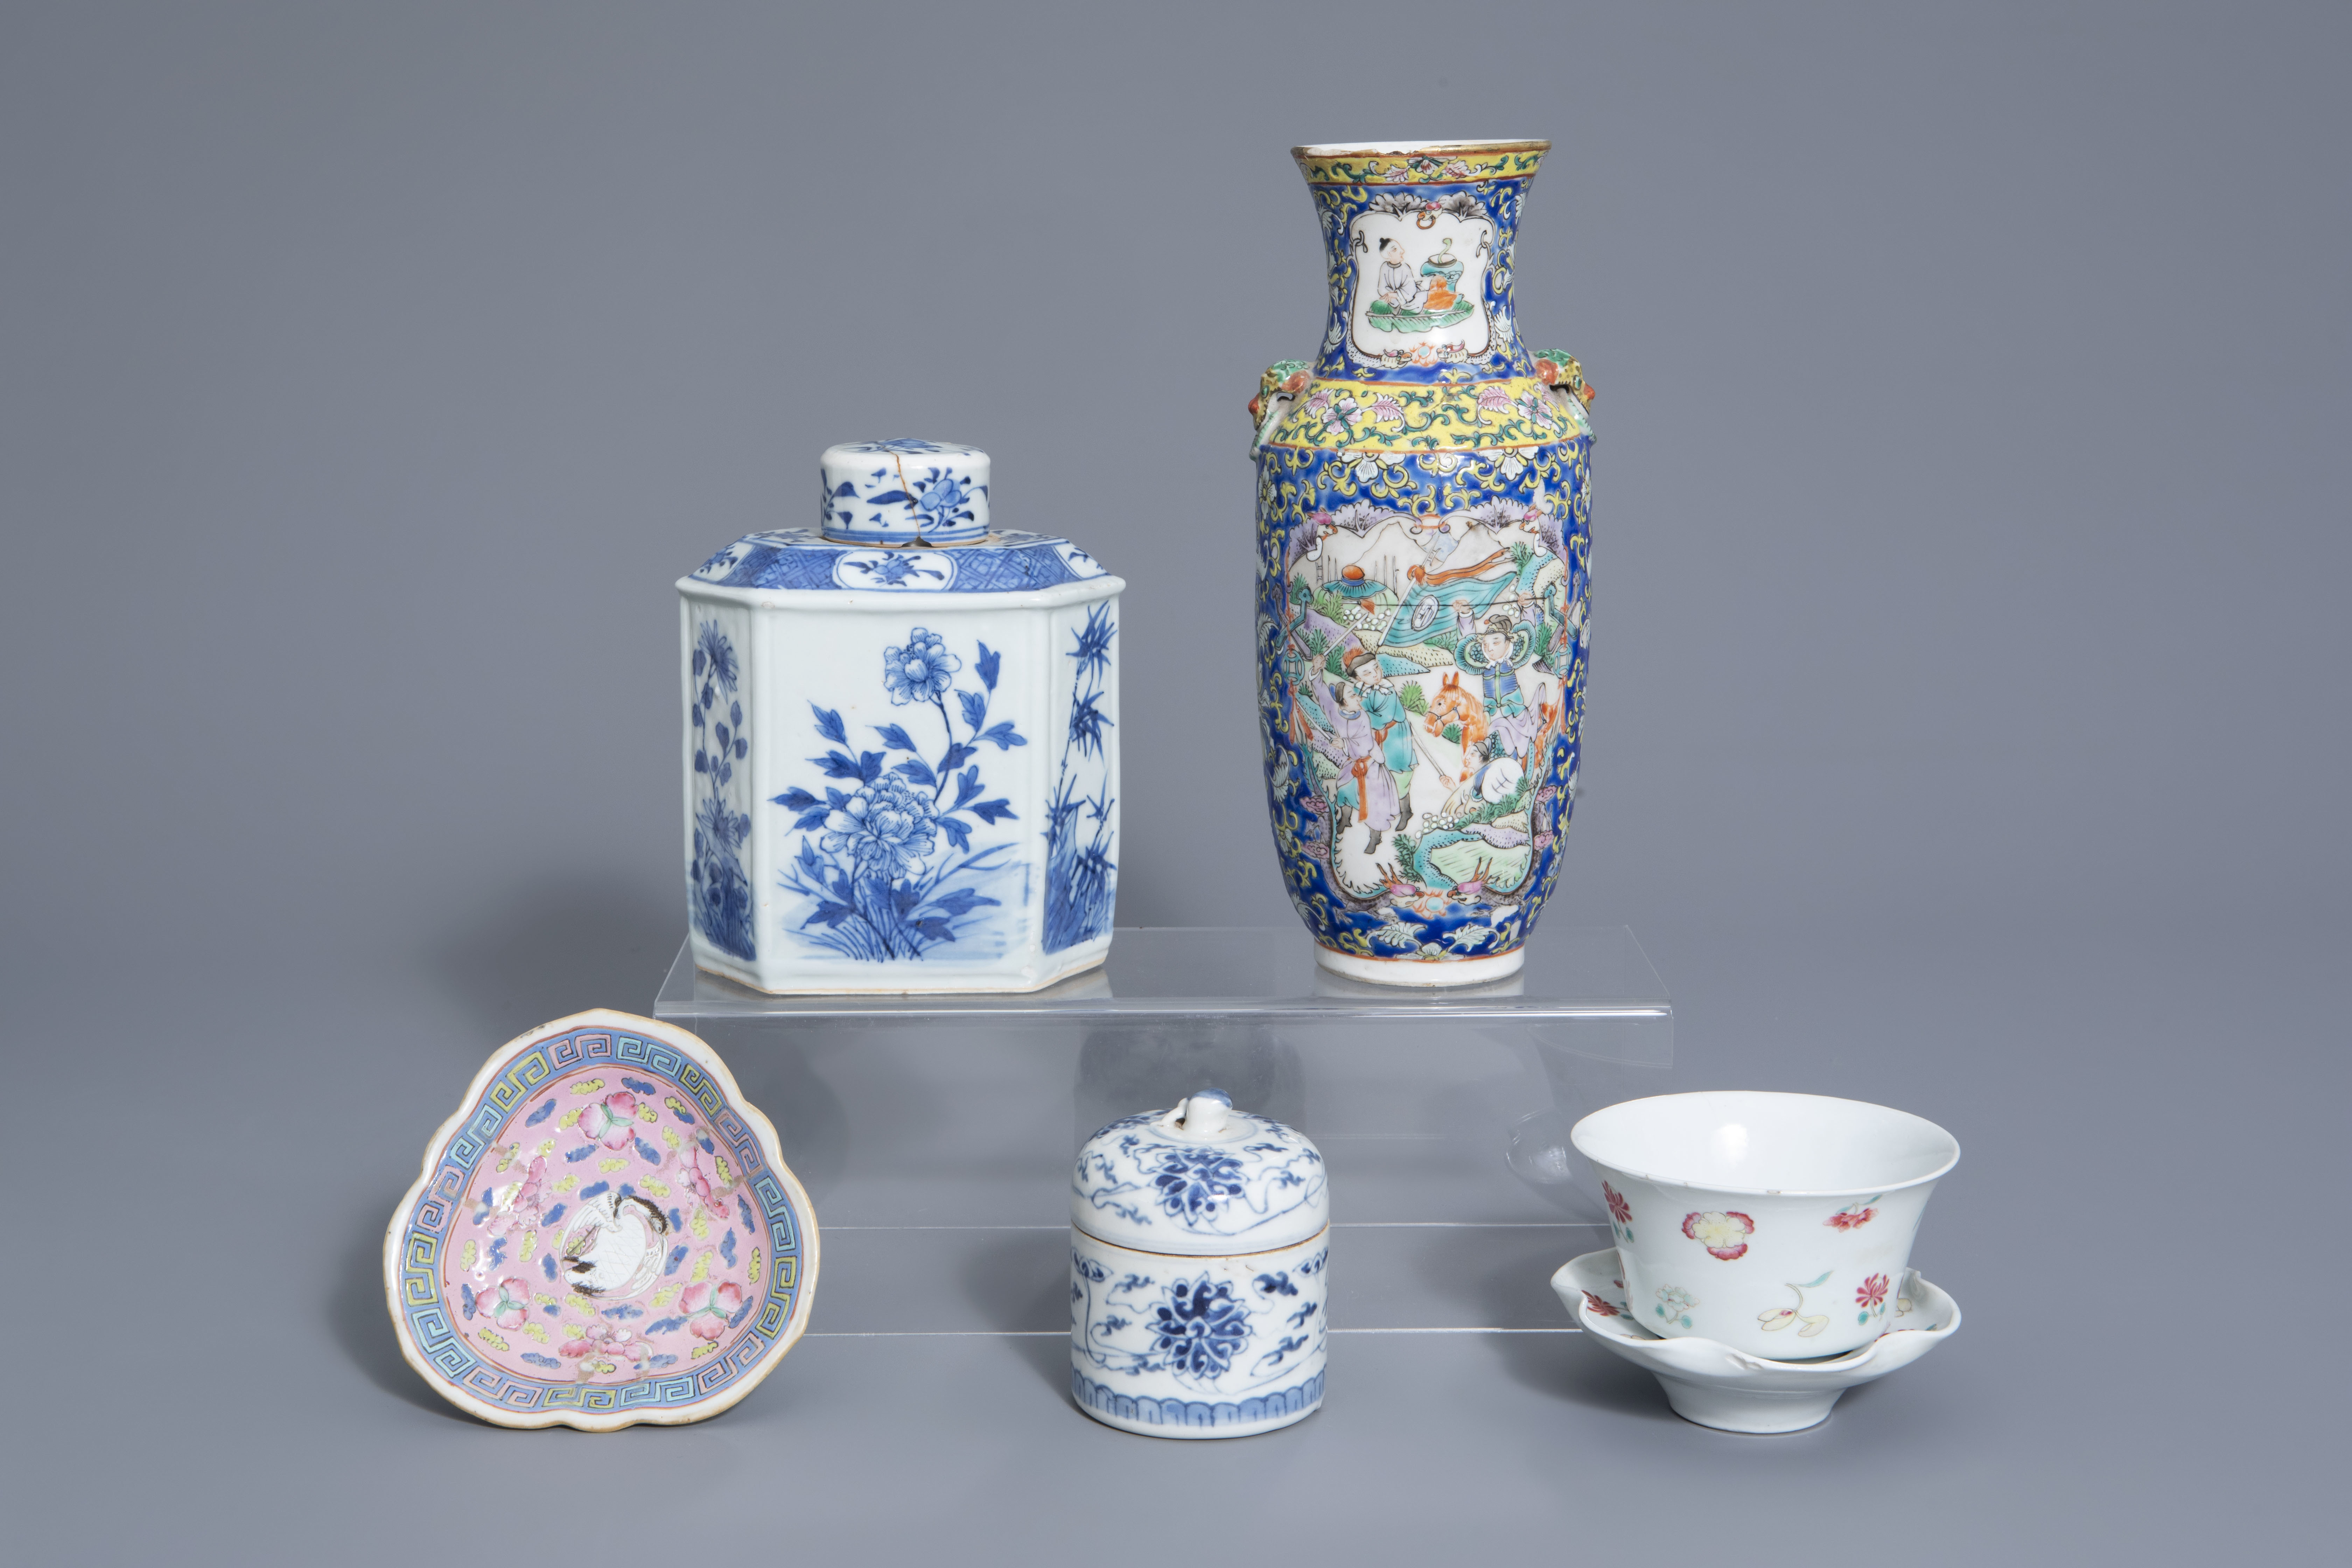 A varied collection of Chinese blue and white and famille rose porcelain, 19th/20th C.